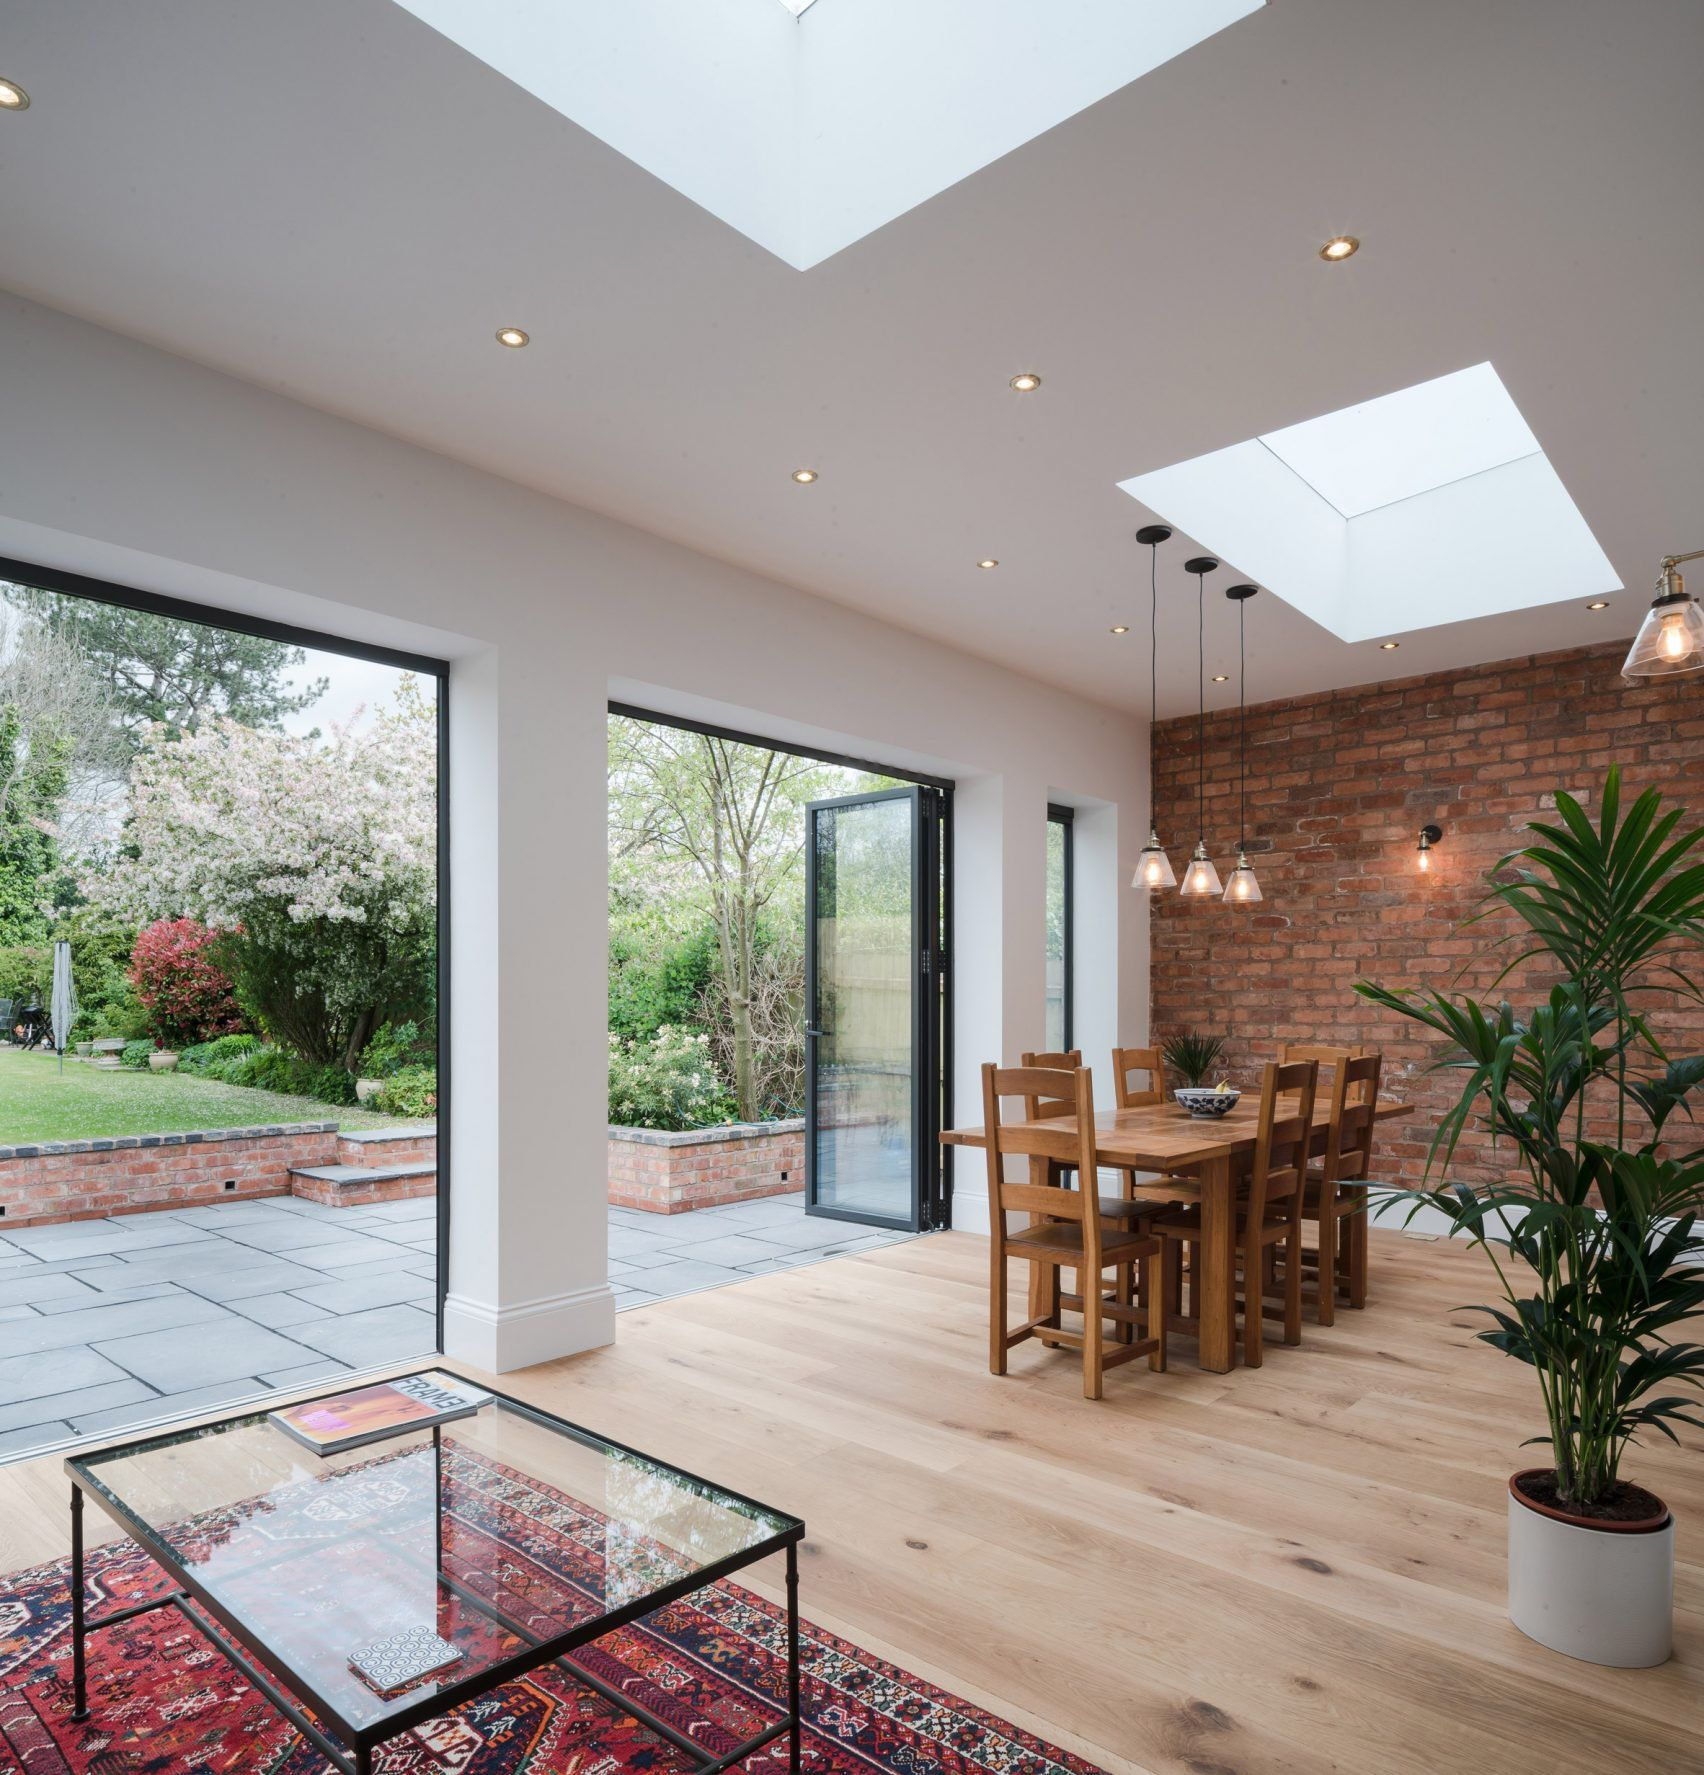 Kitchen Extension Ideas For Bungalows: Colonnade-like Glazing Fronts House Extension By Intervention Architecture